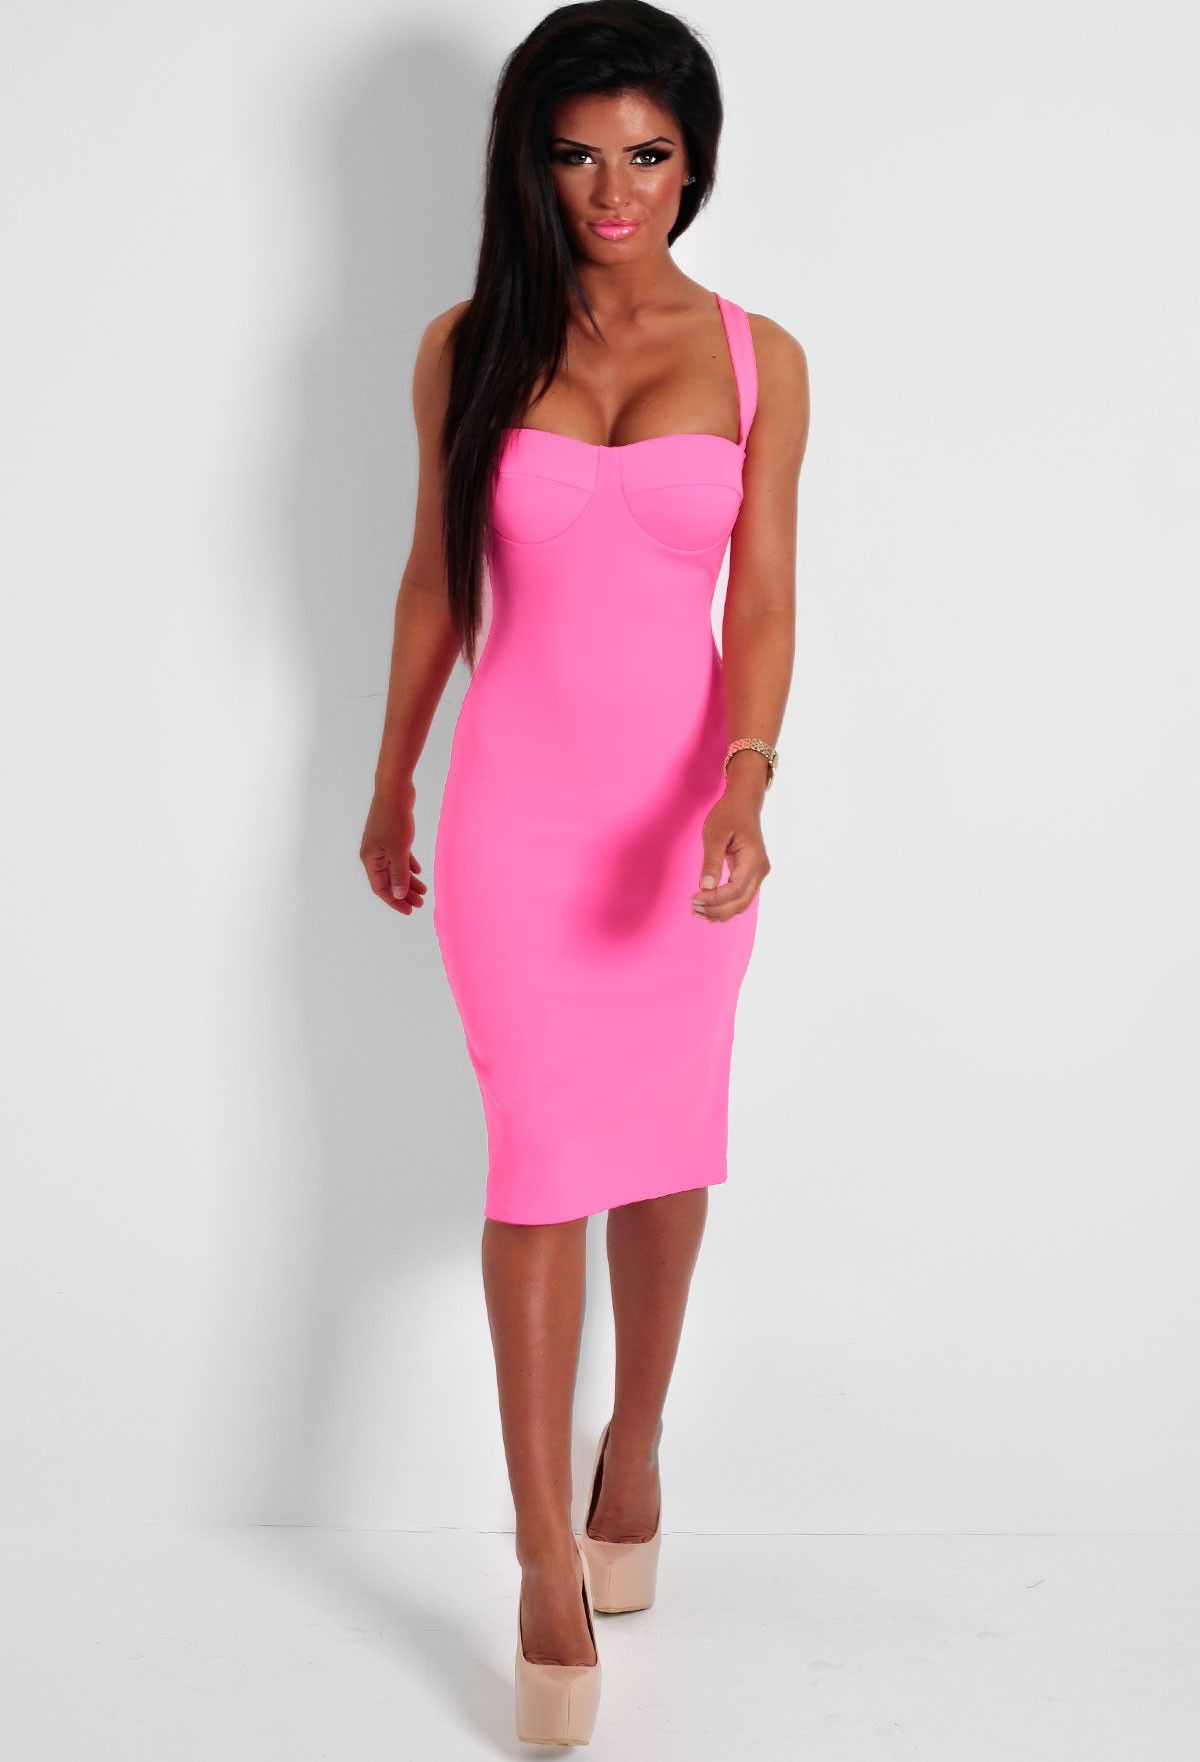 This Pink Bodycon Midi Is Amazing We Love Bright Fashion Here At Pink Boutique And Think It Looks Gorgeous Pink Bodycon Midi Dress Fashion Midi Dress Bodycon